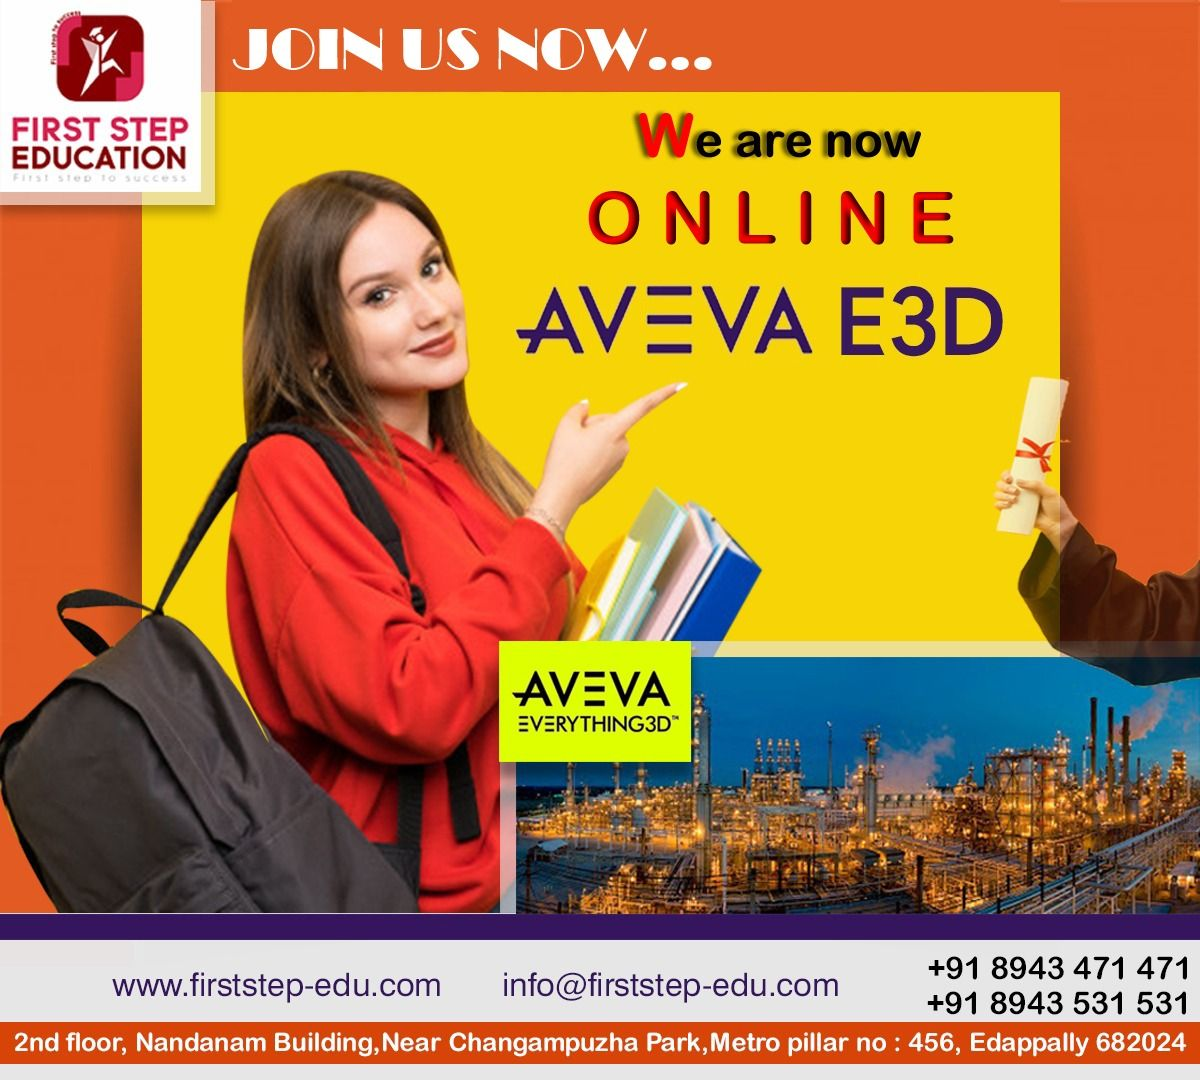 ADMISSION STARTED.... Online AVEVA EVERYTHING 3D (E3D) Course Join First Step Education - First Step Education is an ISO 9001:2015 certified company We assure you a 100% placement assistance to rightly direct you. Join Now! Contact Us to Apply Now! +91 8943471471 Whatsapp: +91 8943471471  Visit website to know more: www.firststep-edu.com  #onlineeducation #onlinecourses #onlineclass #firststepeducation #vacationclass#avevae3d #aveva #onlinecourses #diplomacourses #everything3D #e3d